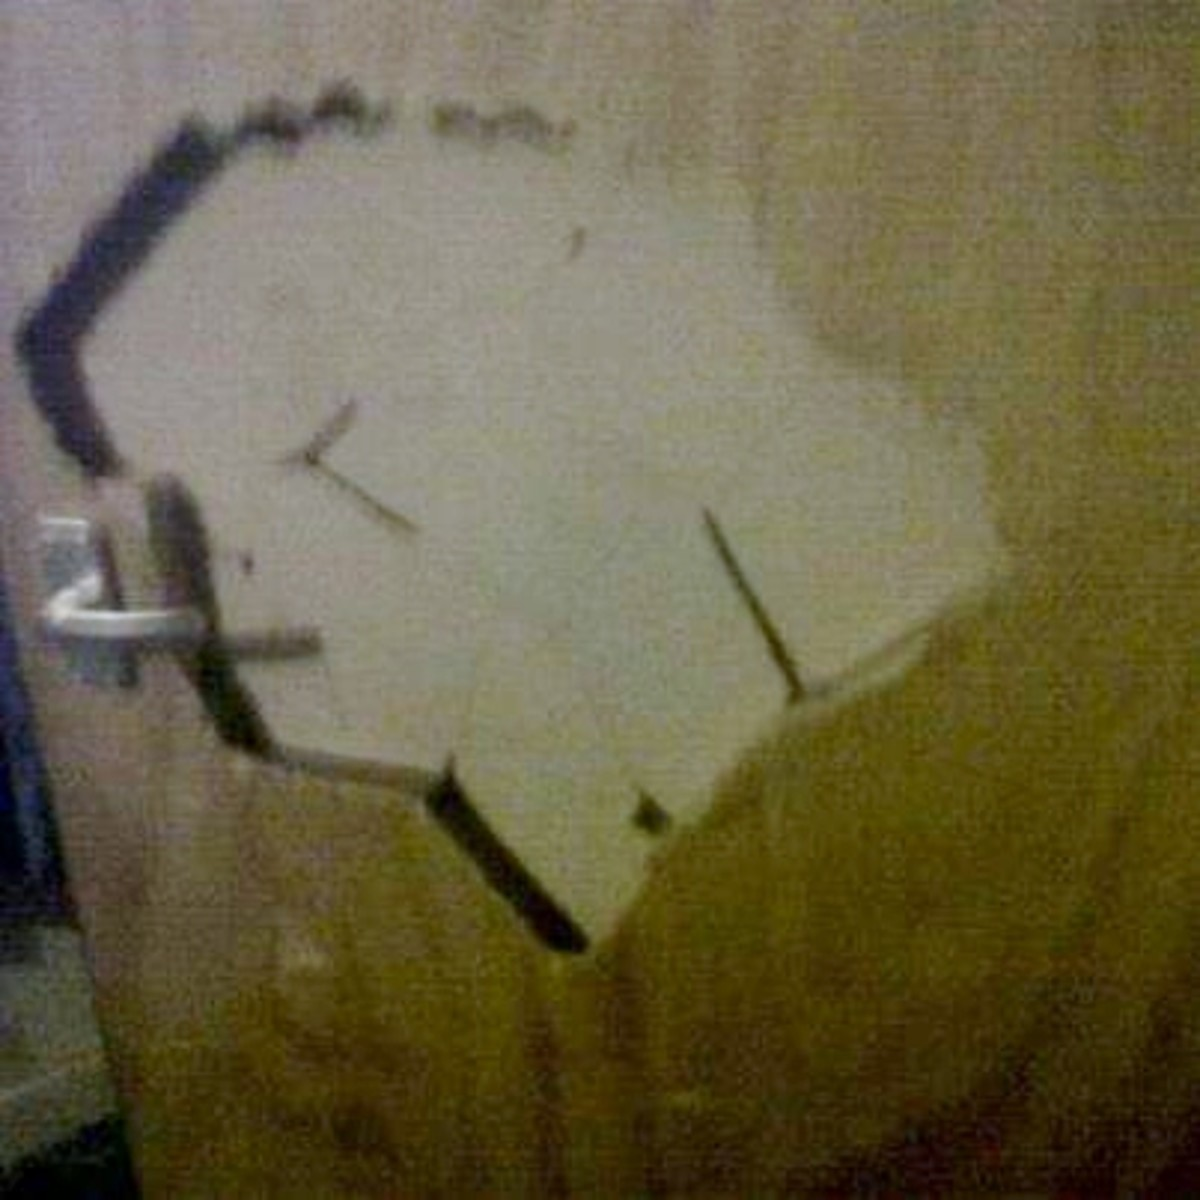 How To Cheaply Repair a Hole in Drywall or a Wooden Door